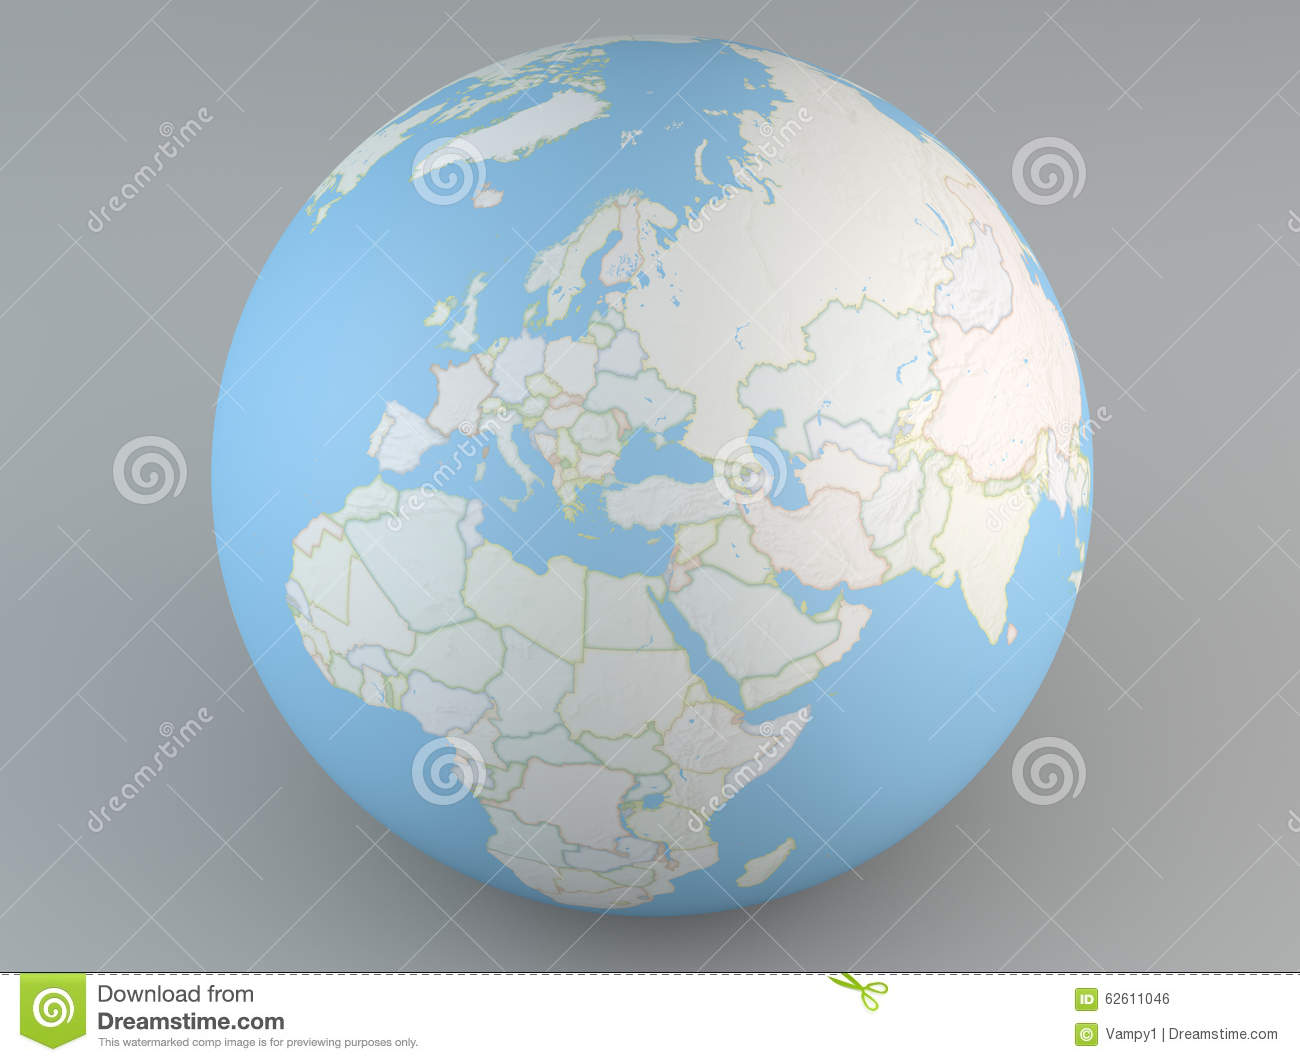 political map globe of europe middle east asia and africa royalty free stock image